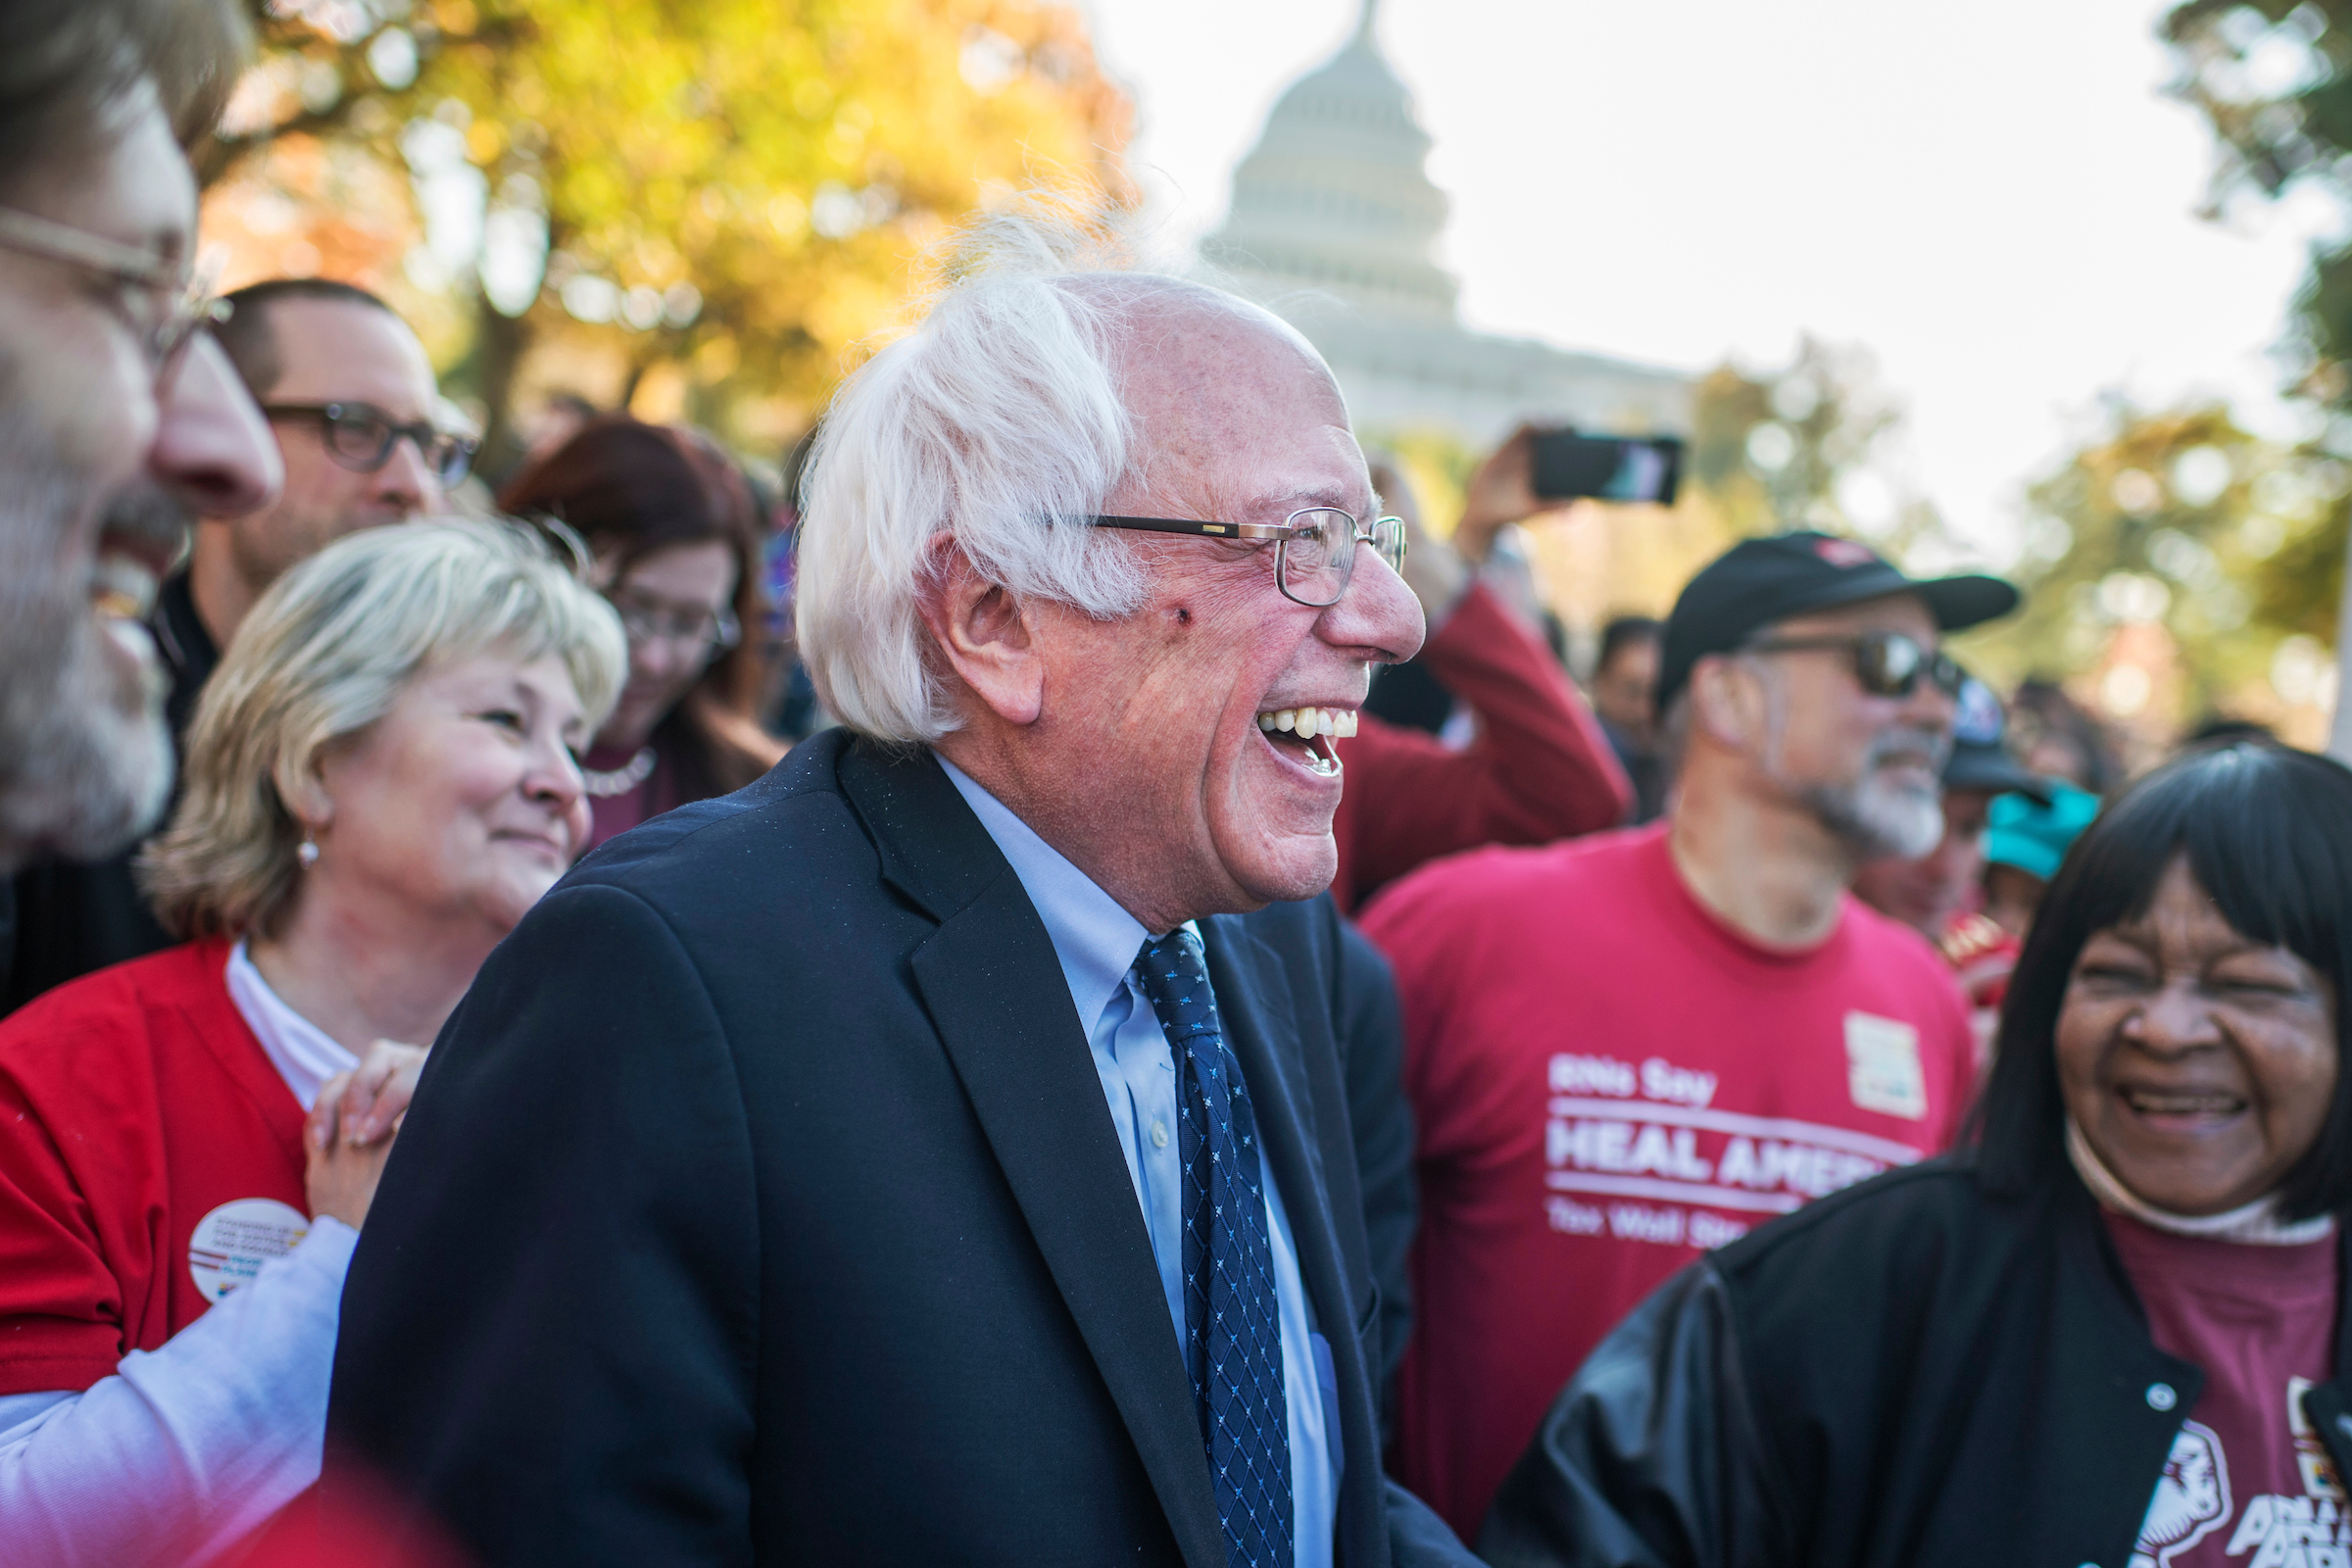 UNITED STATES - NOVEMBER 17: Sen. Bernie Sanders, I-Vt., prepares to speak at a rally held by labor, environmental, and consumer groups in Upper Senate Park to call for economic and social justice, November 17, 2016. (Photo By Tom Williams/CQ Roll Call)